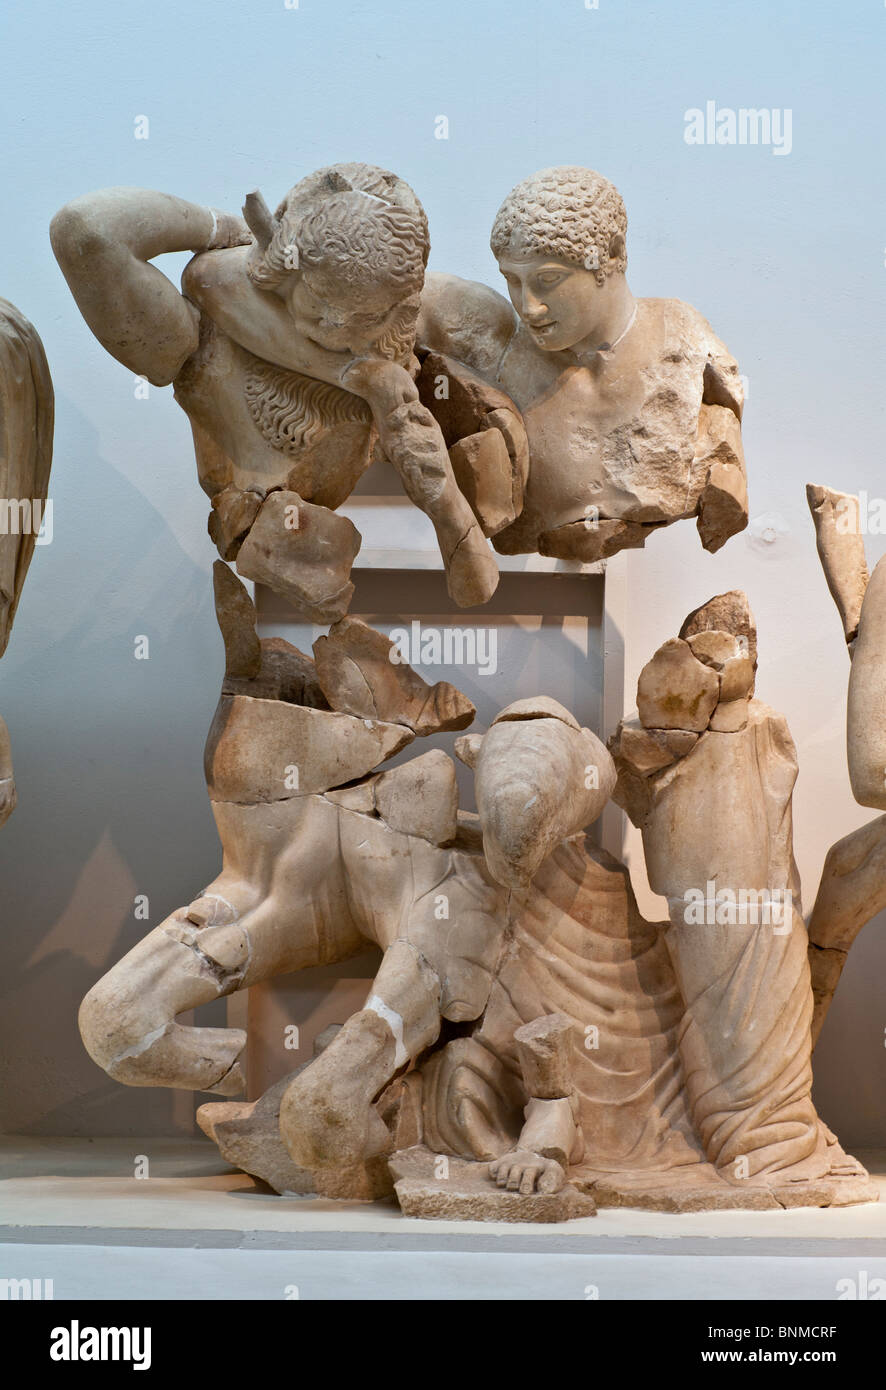 A centaur biting a lapith. From the west pediment of the Temple of Zeus at Olympia, Greece. - Stock Image